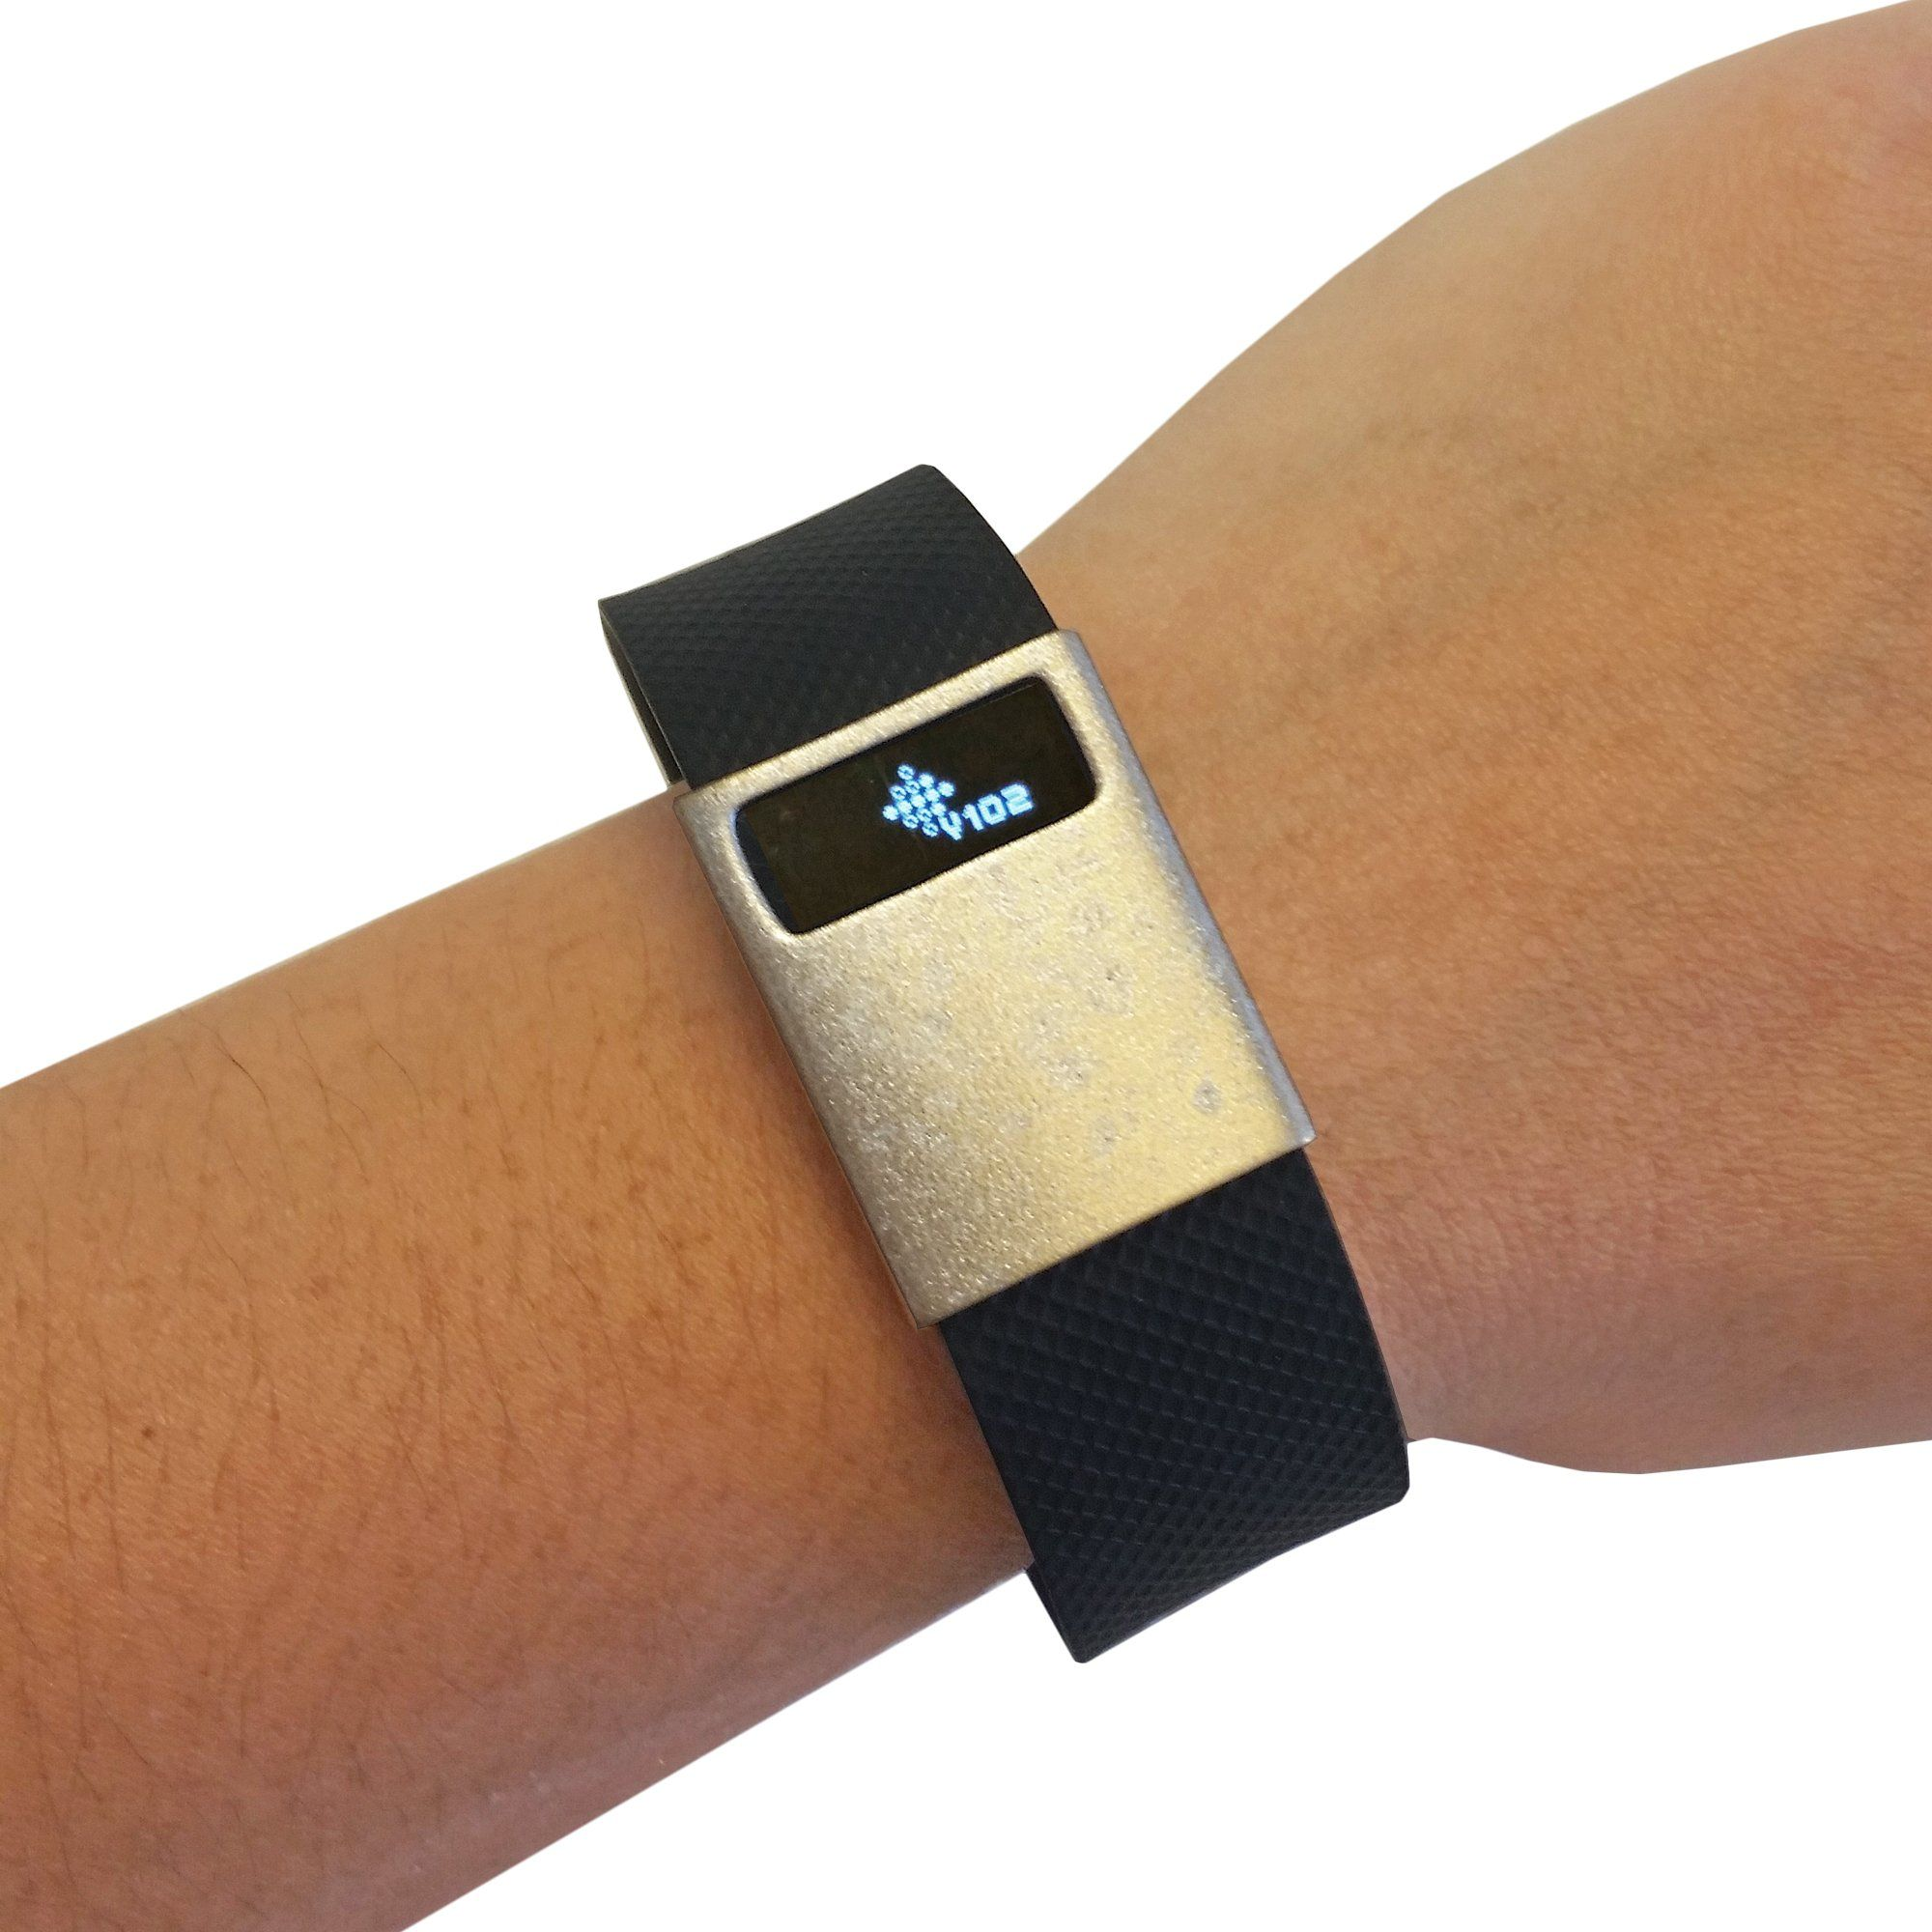 Fitbit chargecharge hr slide on accessory premium unisex